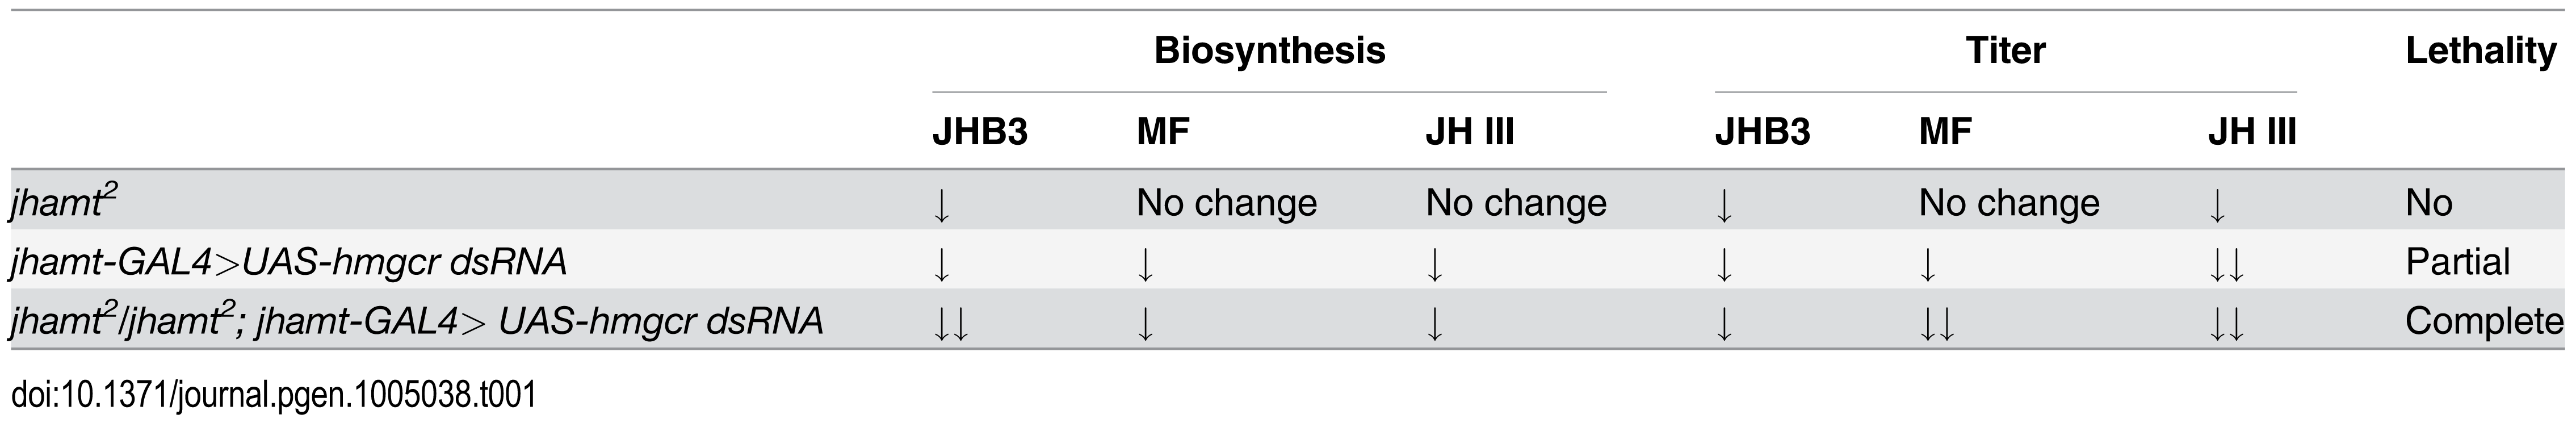 Comparisons of JH biosynthesis, JH titer, and lethality among three genotypes.